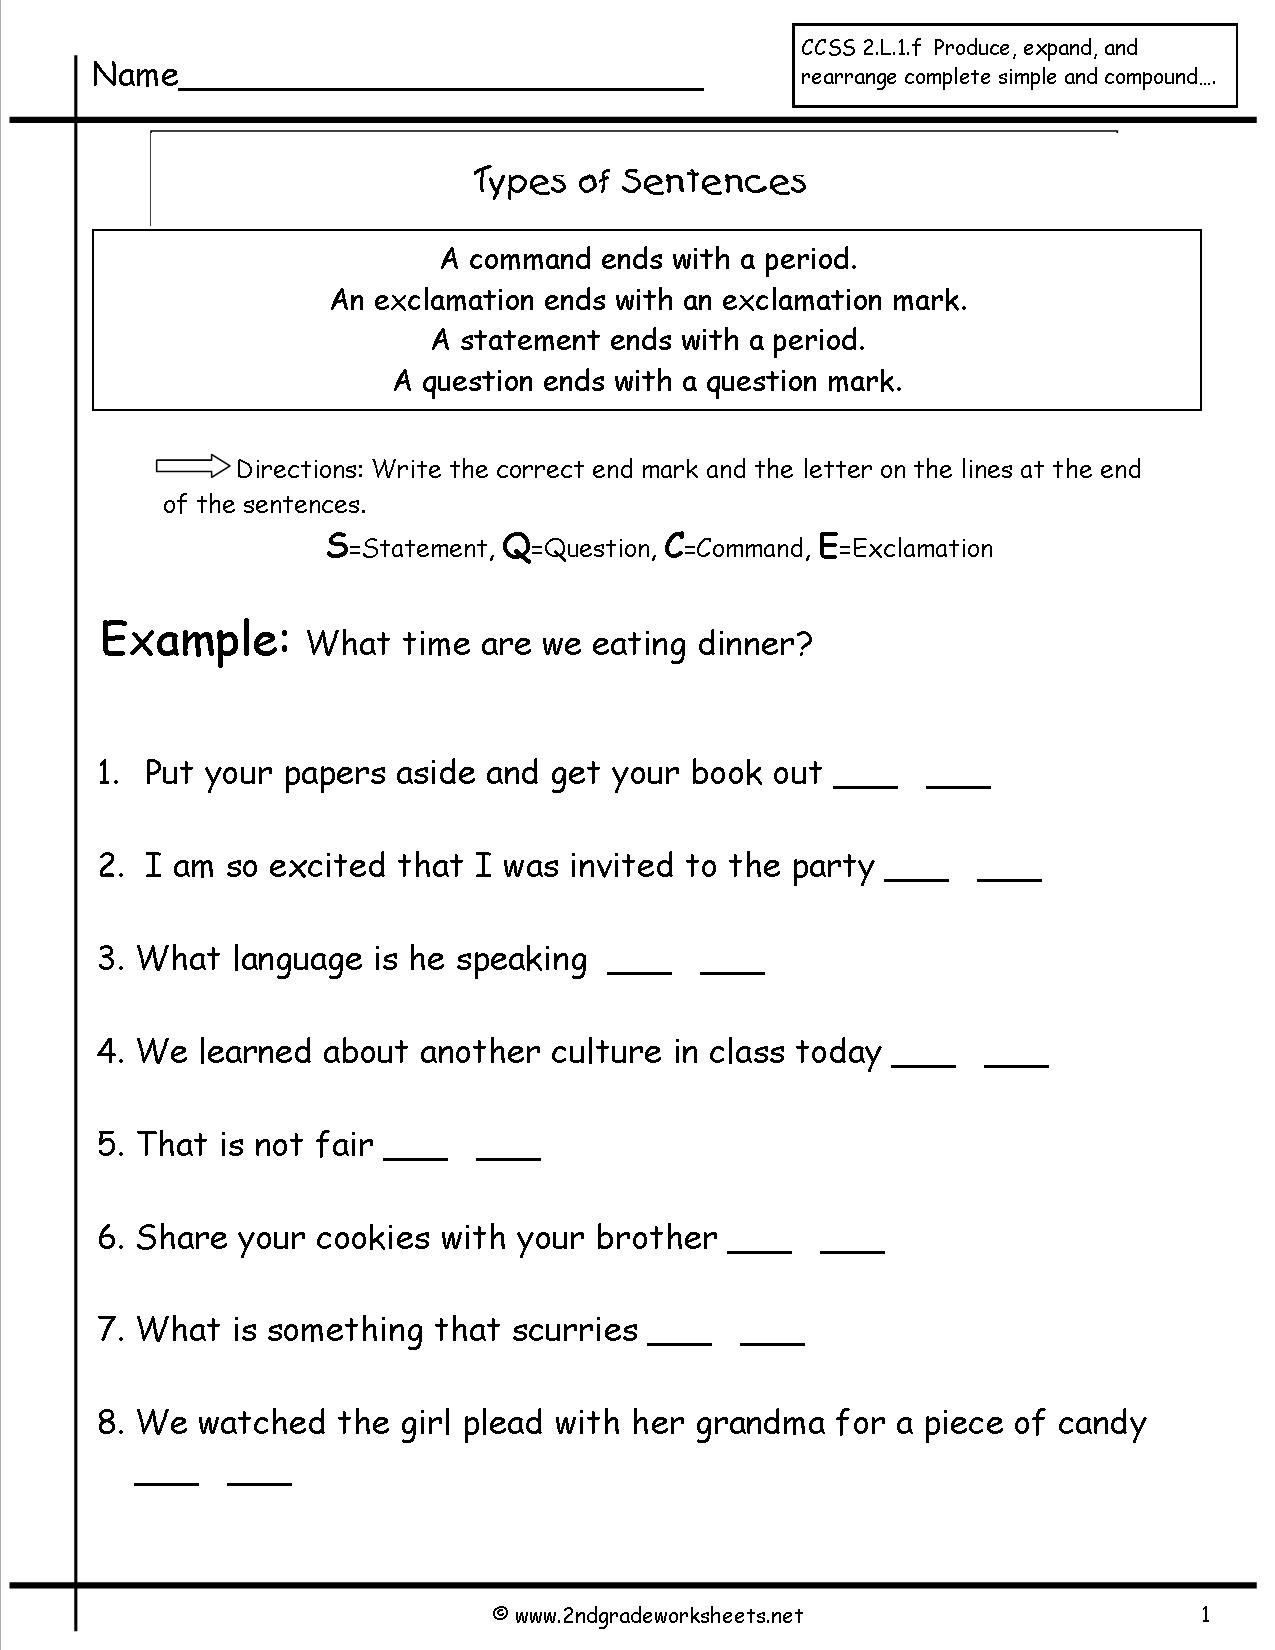 Topic Sentence Worksheets 3rd Grade Second Grade Sentences Worksheets Ccss 4th Sentence